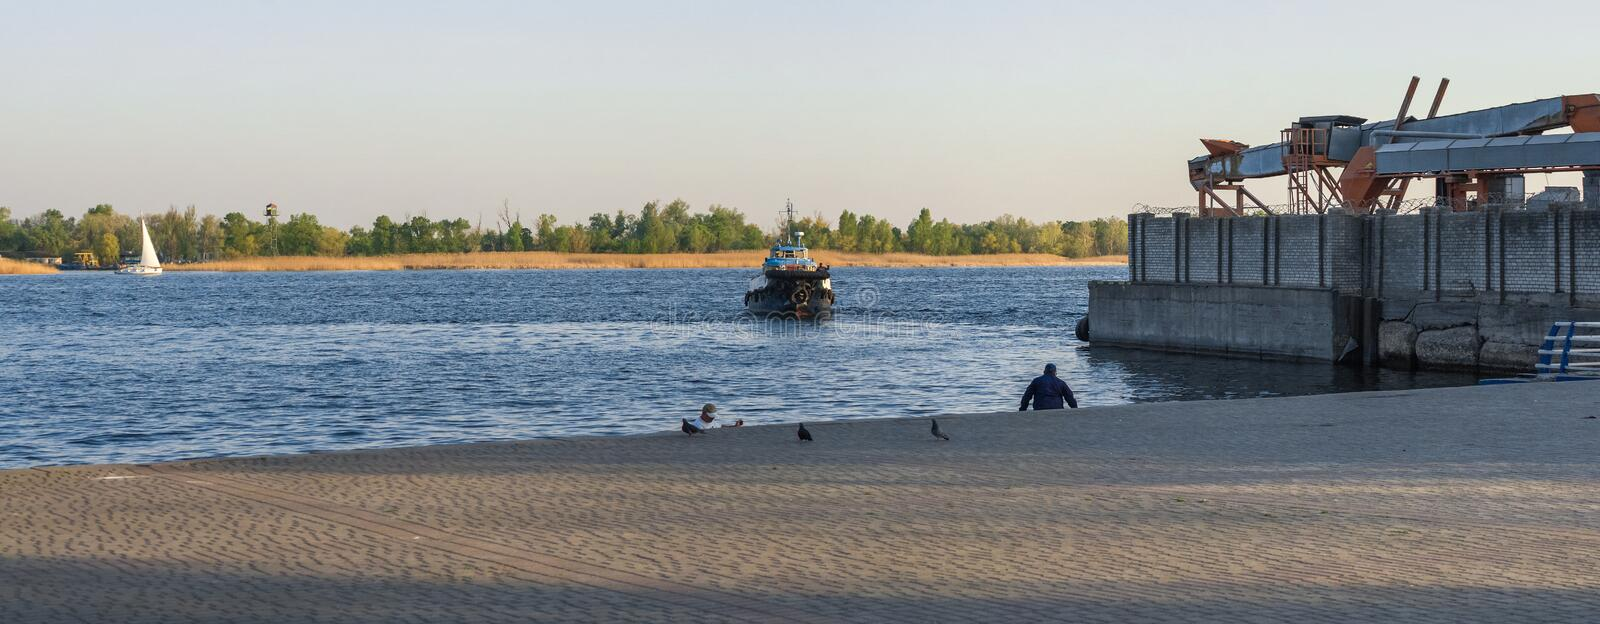 View of the Dnieper River in Kherson, Ukraine royalty free stock photo